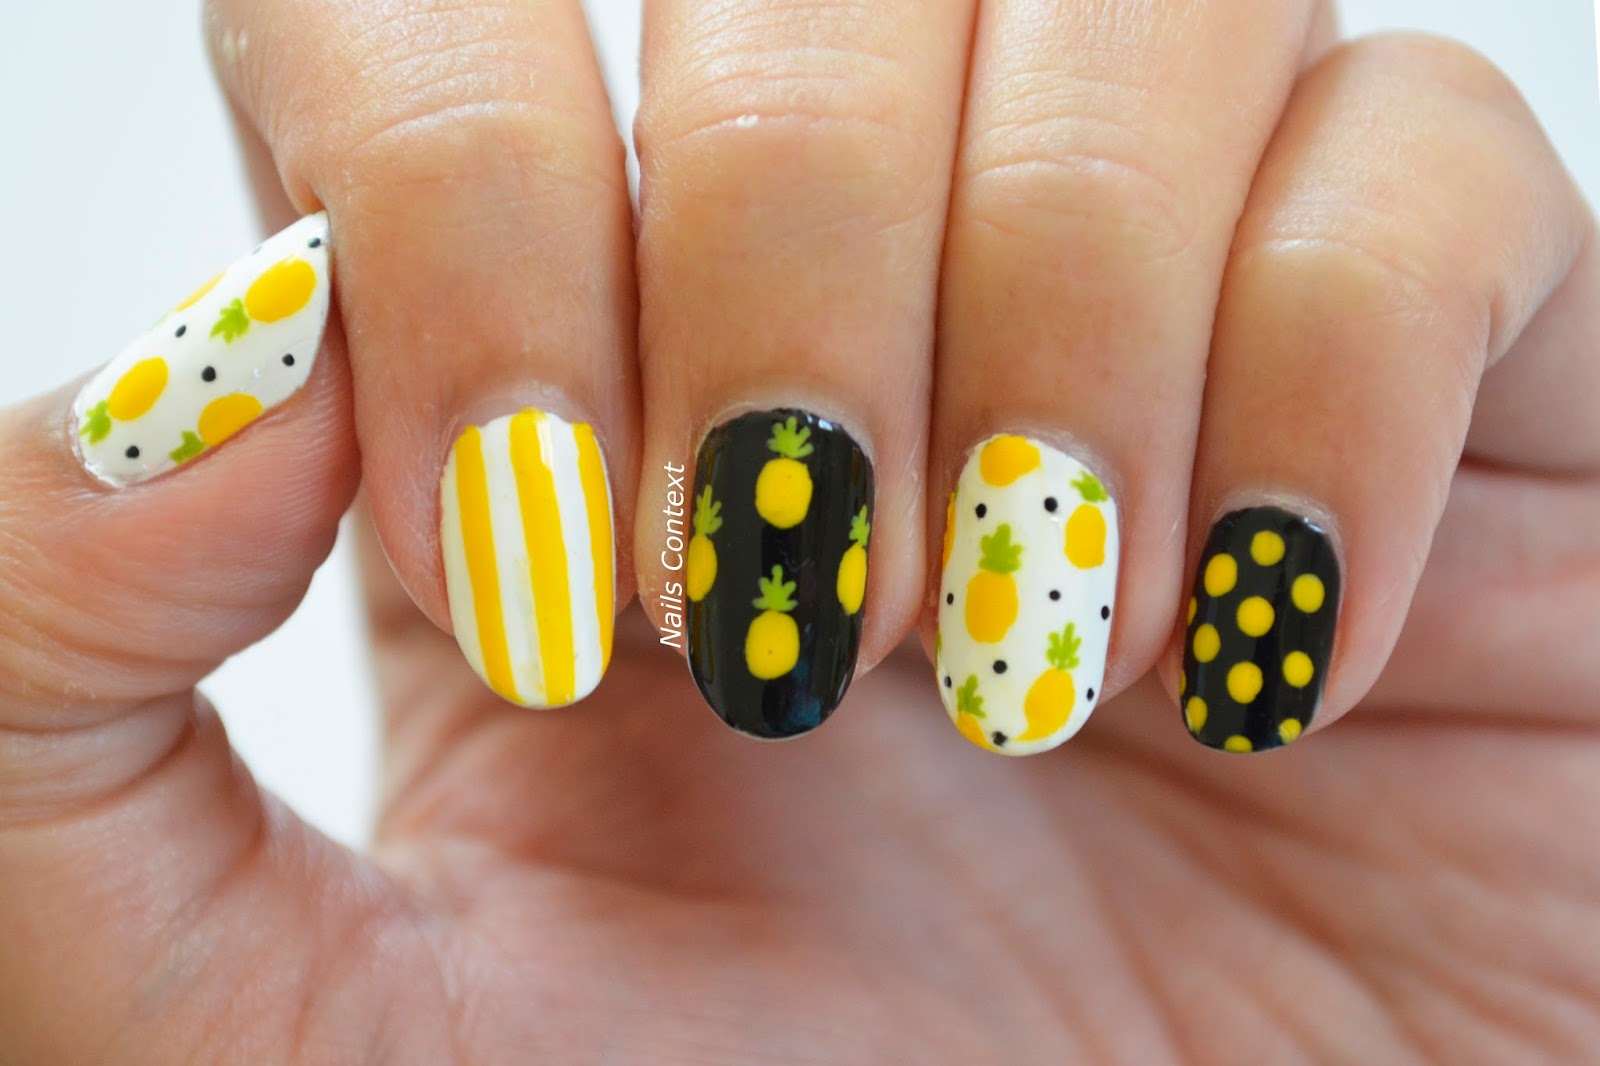 Manicure Tools In Las Vegas | Splendid Wedding Company